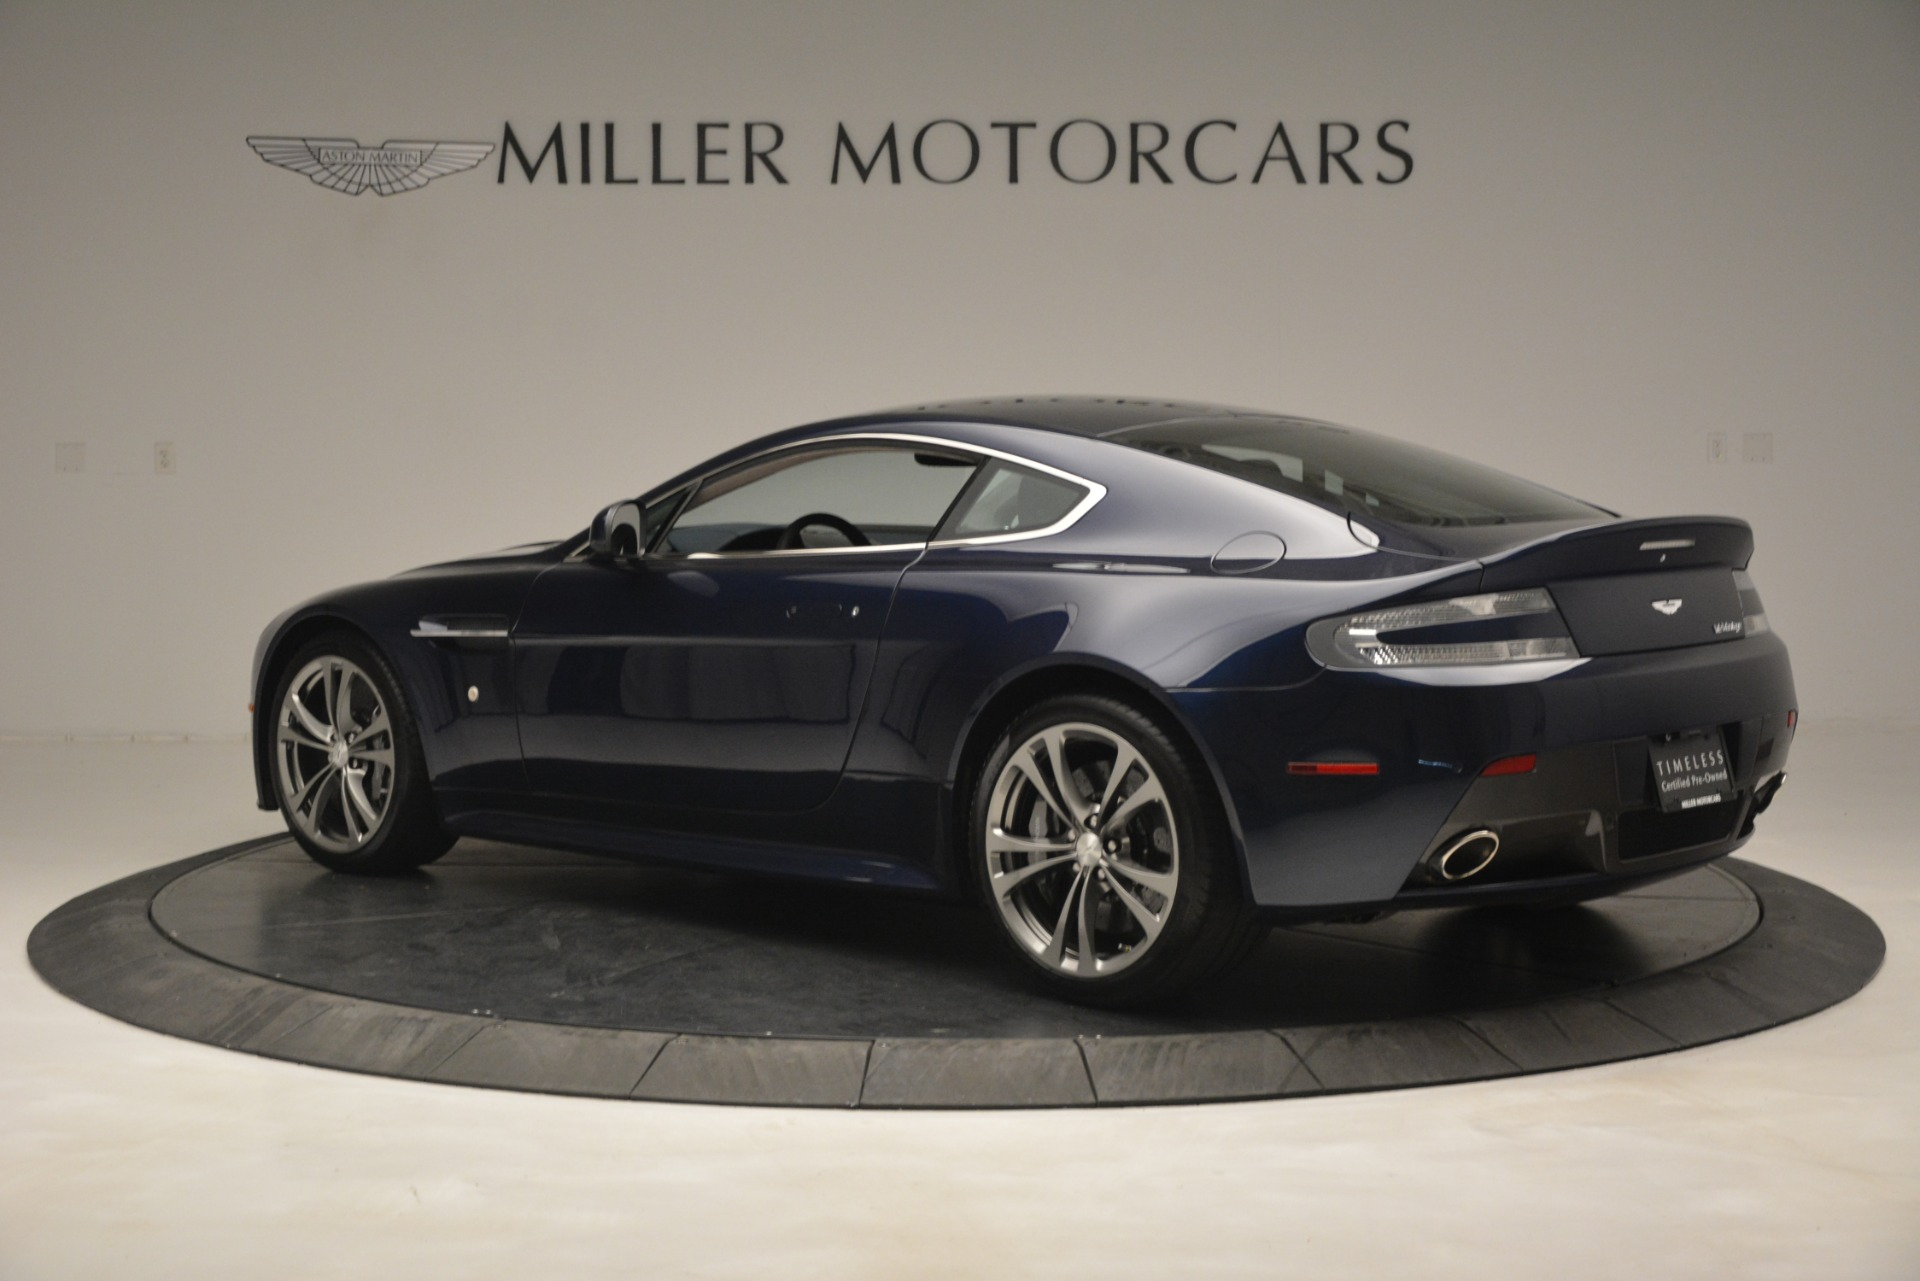 Used 2012 Aston Martin V12 Vantage  For Sale In Westport, CT 3046_p4